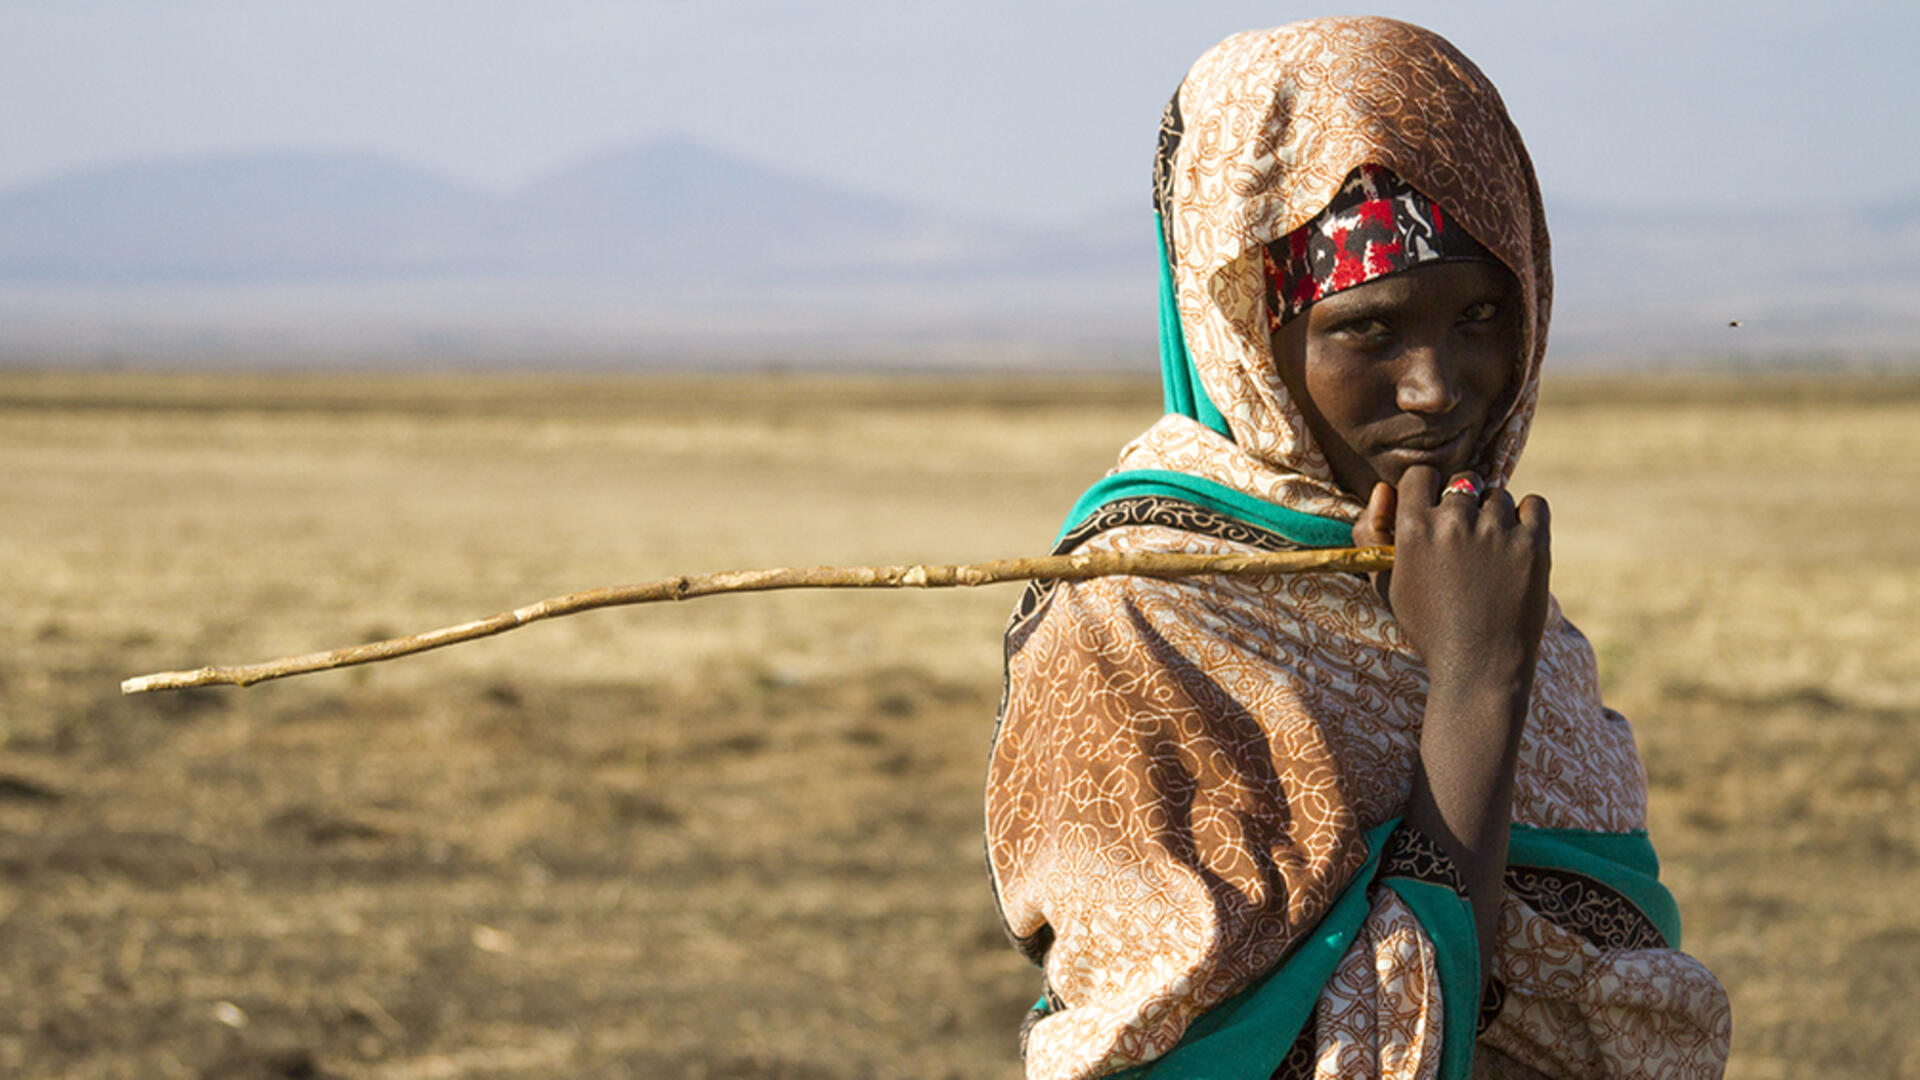 A teenage girl, holding a stick and looking at the camera, stands in a drought affected very dry landscape with mountains in the distance.